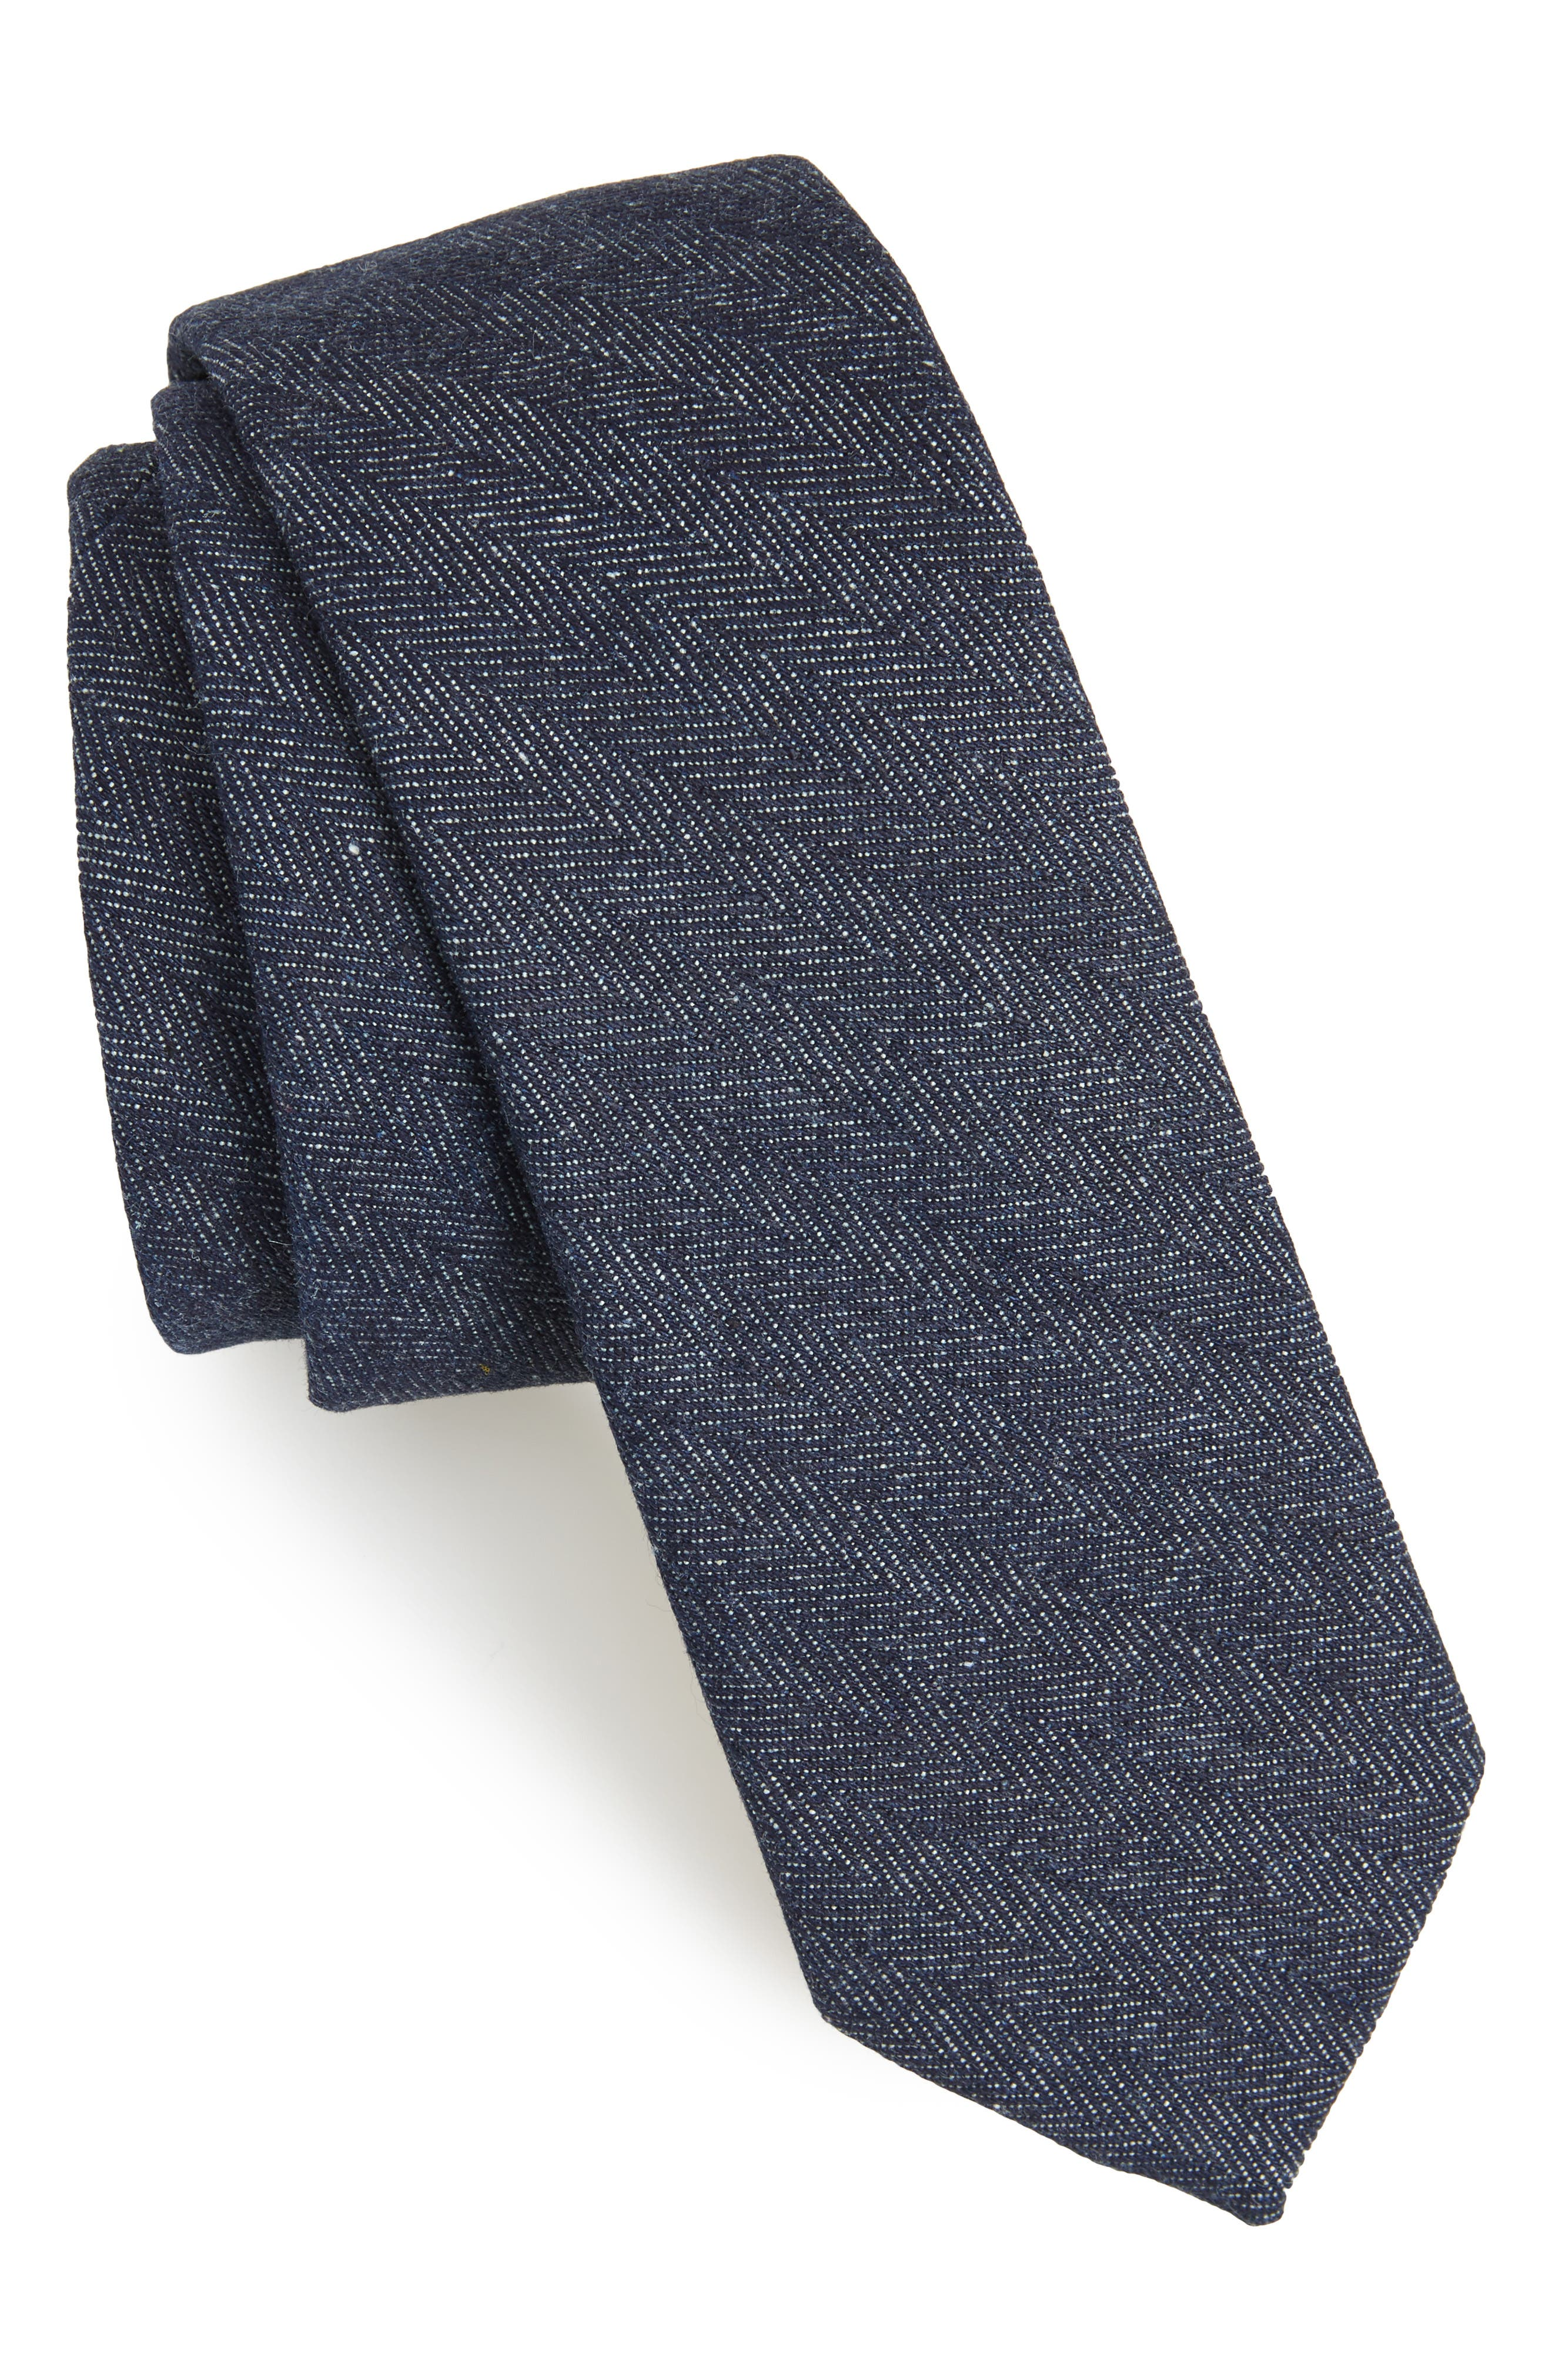 Thames Solid Skinny Tie,                         Main,                         color, Navy